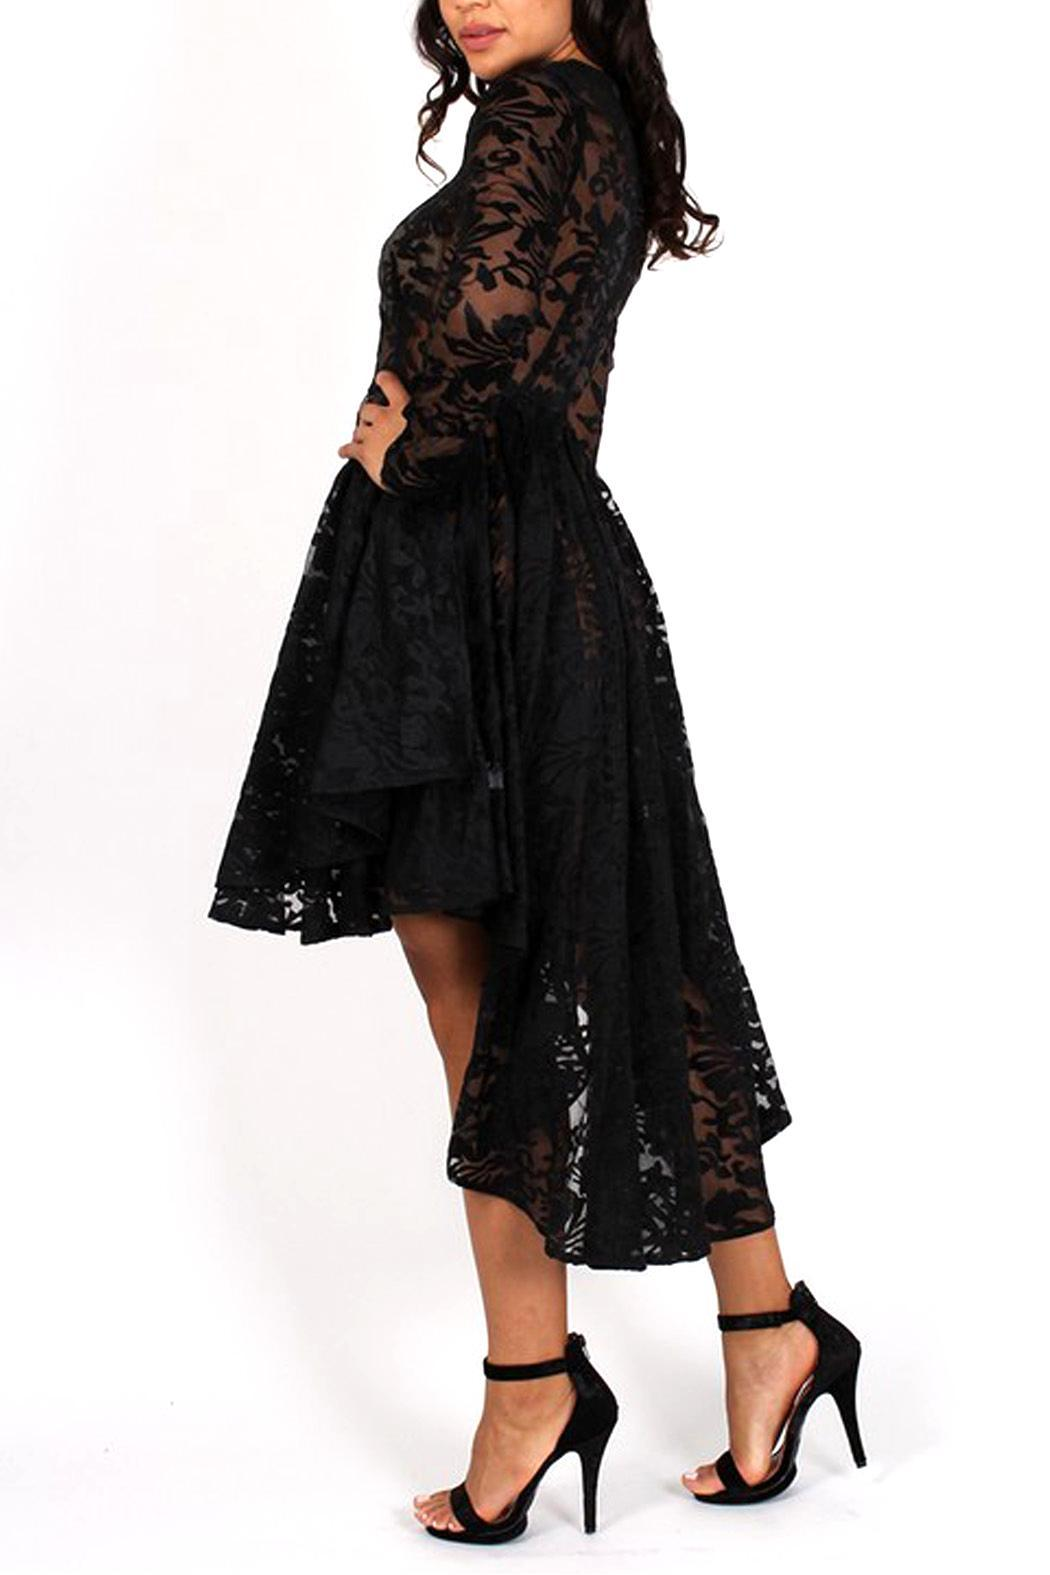 Eien Apparel High Low Lace Dress From South Carolina By